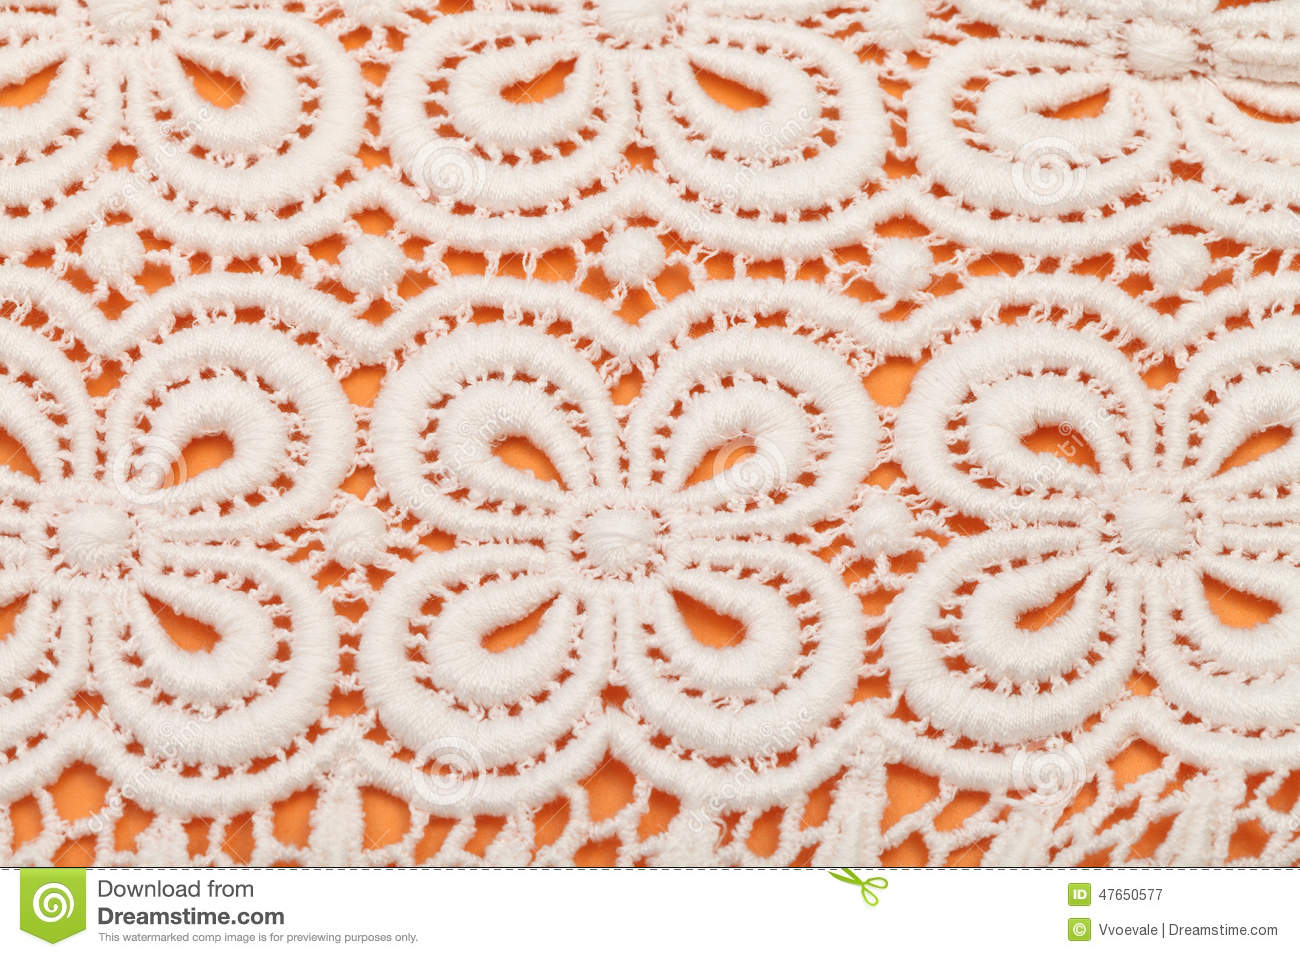 Floral Ornament By Machine Knitting Guipure Lace Stock Image - Image ...